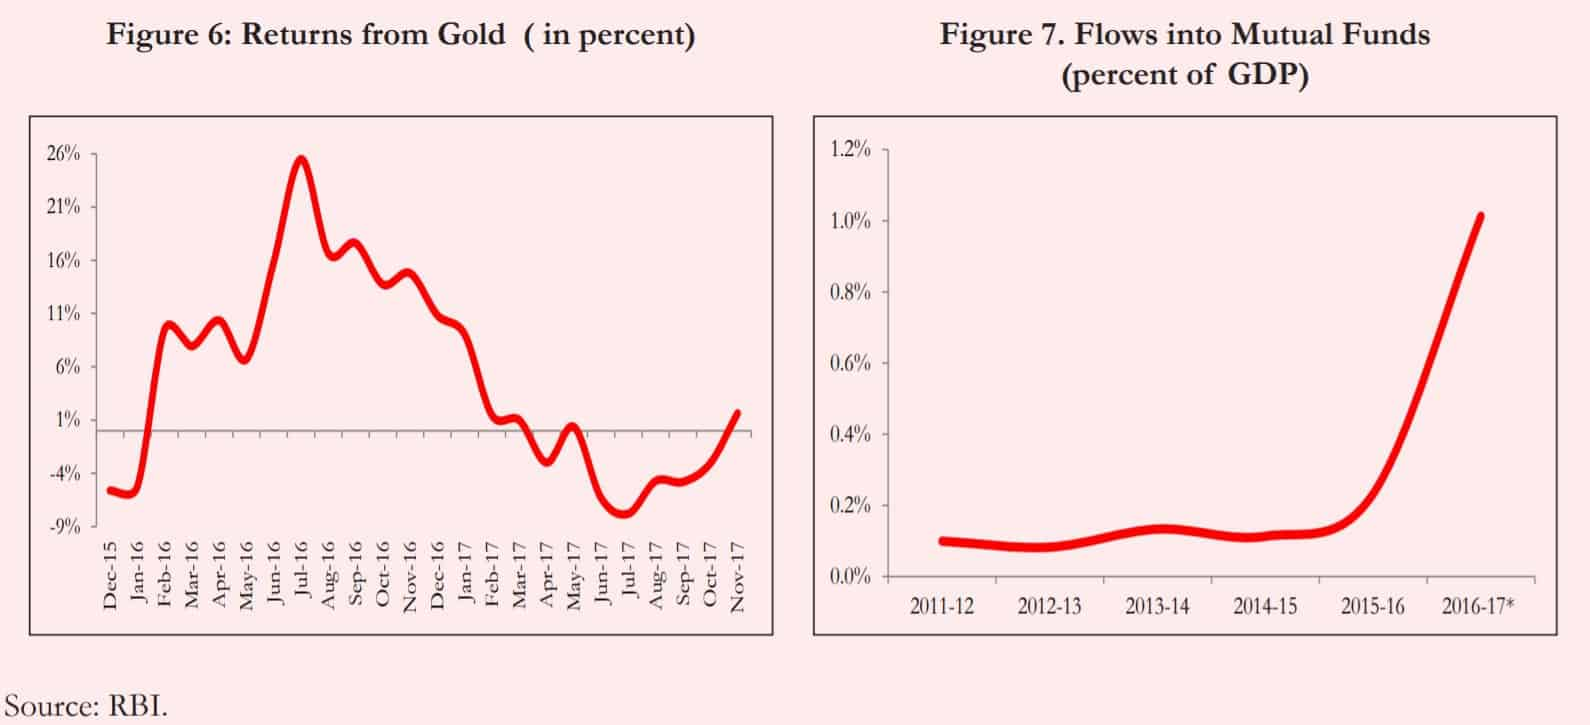 economic survey 2017-2018 gold returns and mutual fund inflows